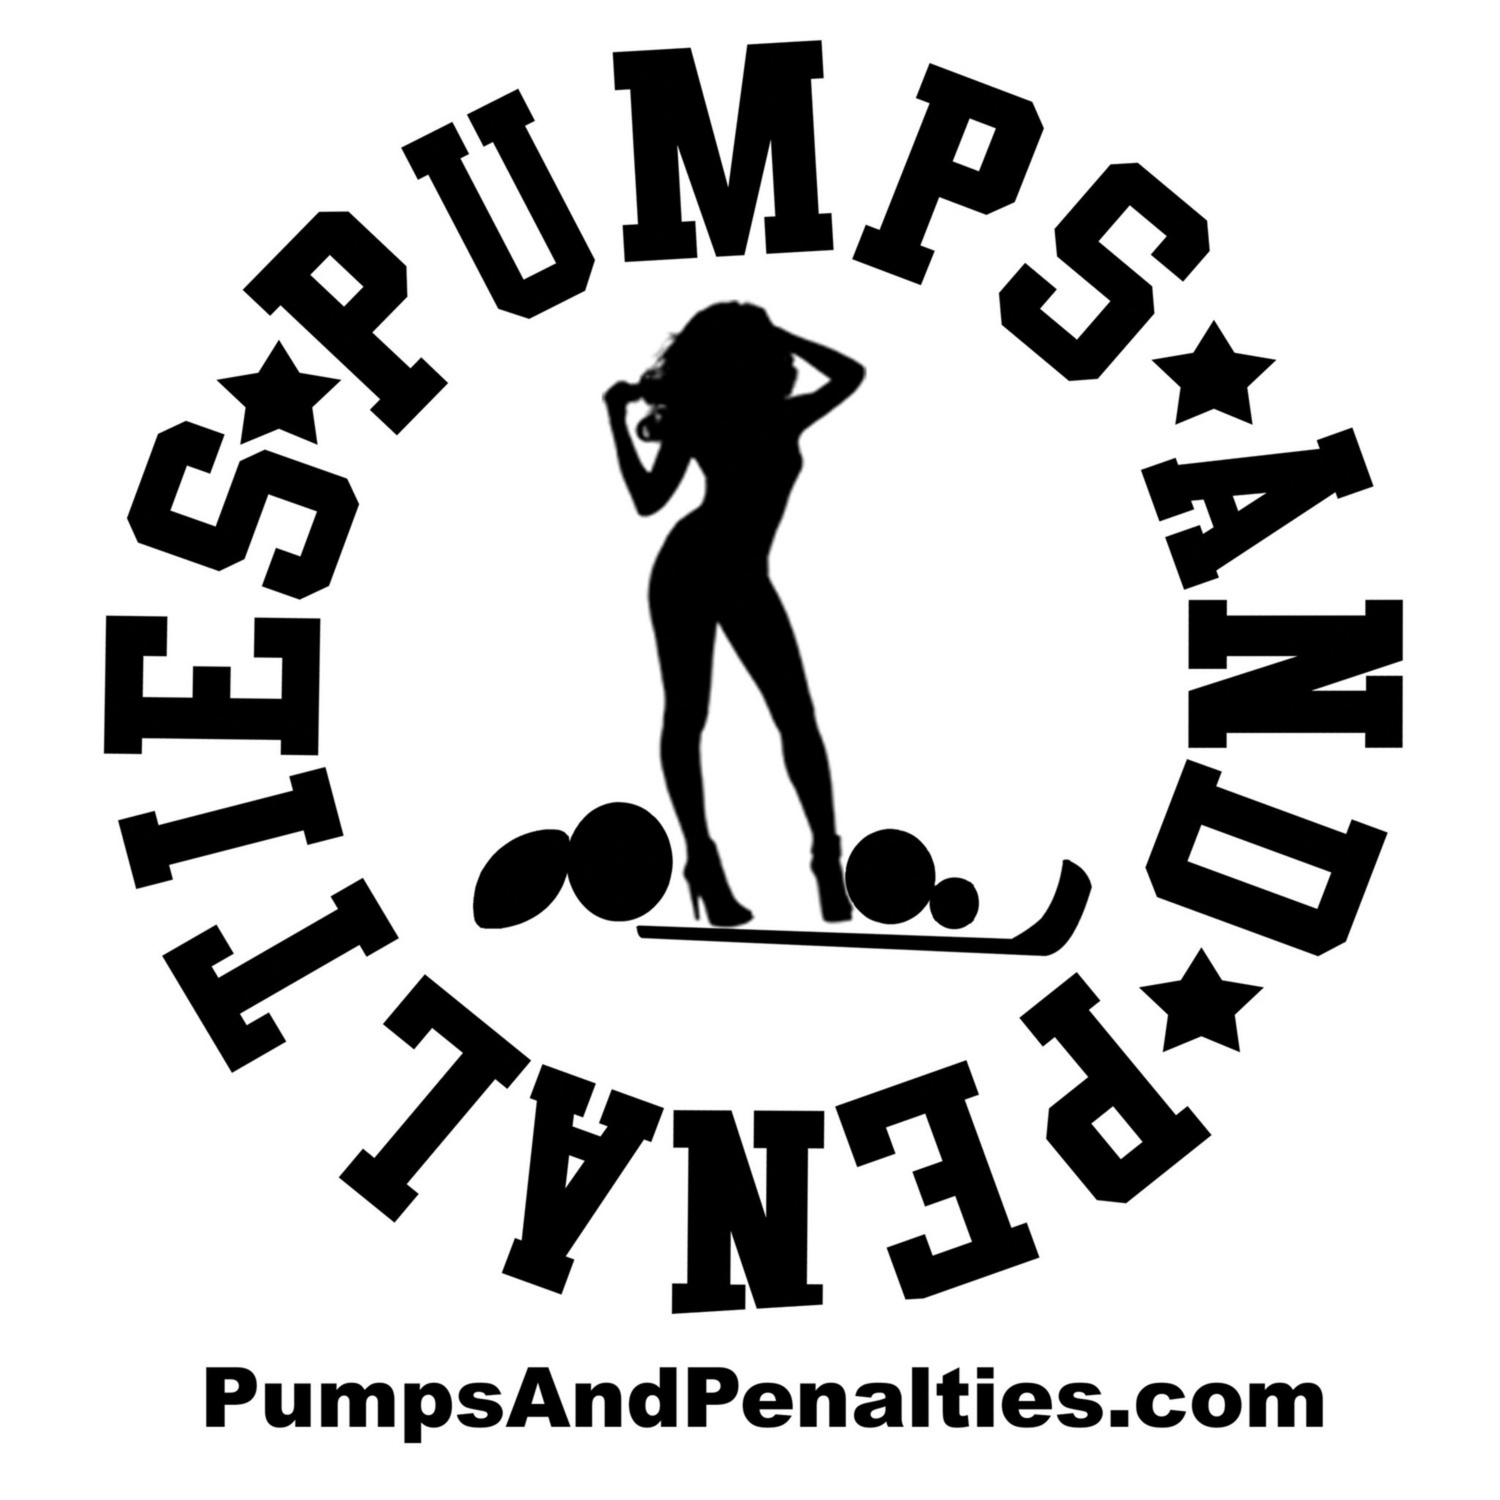 Pumps And Penalties